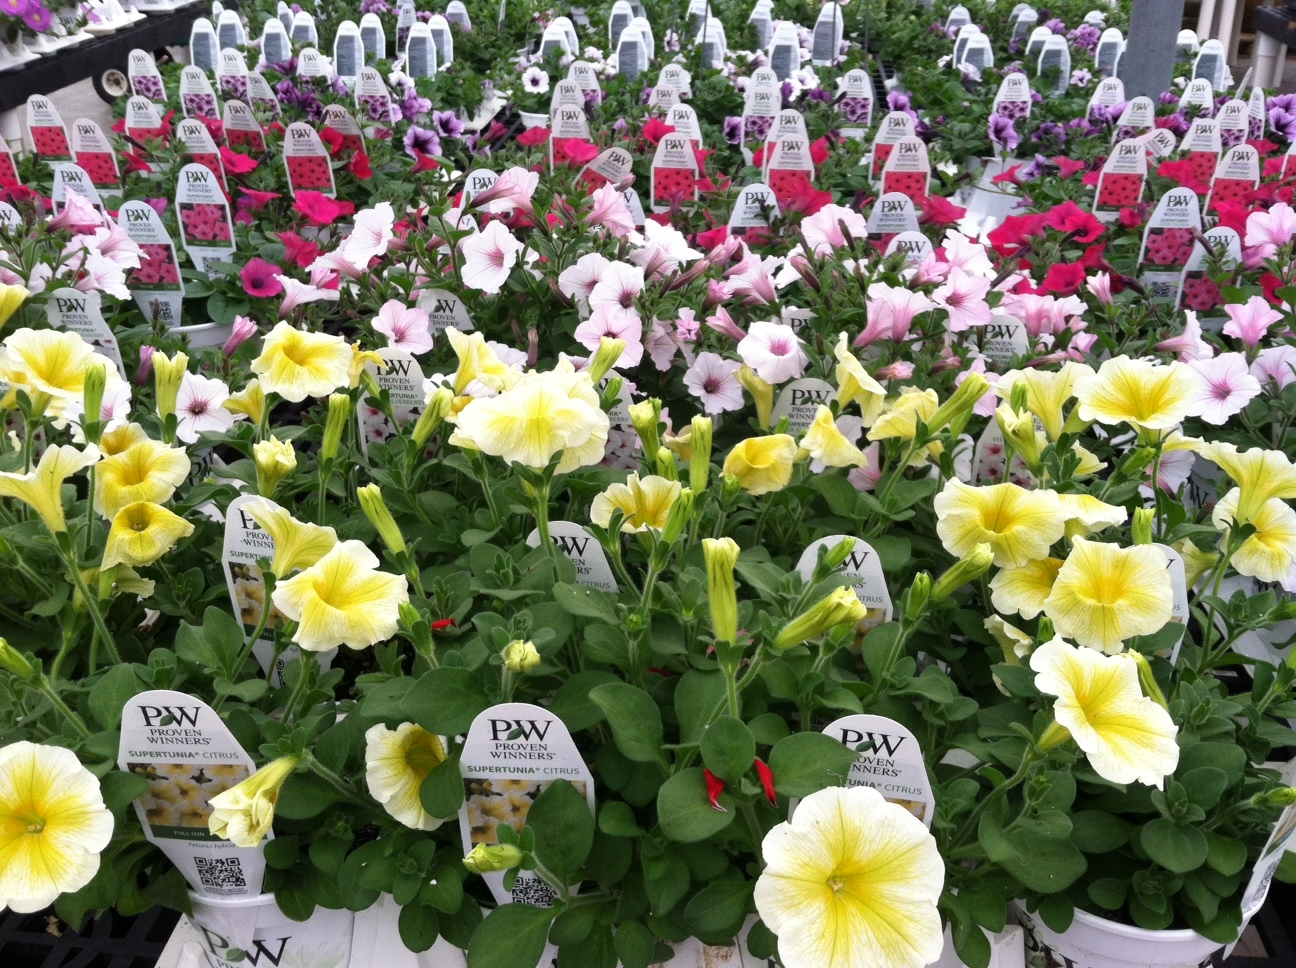 Our plants wentworth greenhouses perennials izmirmasajfo